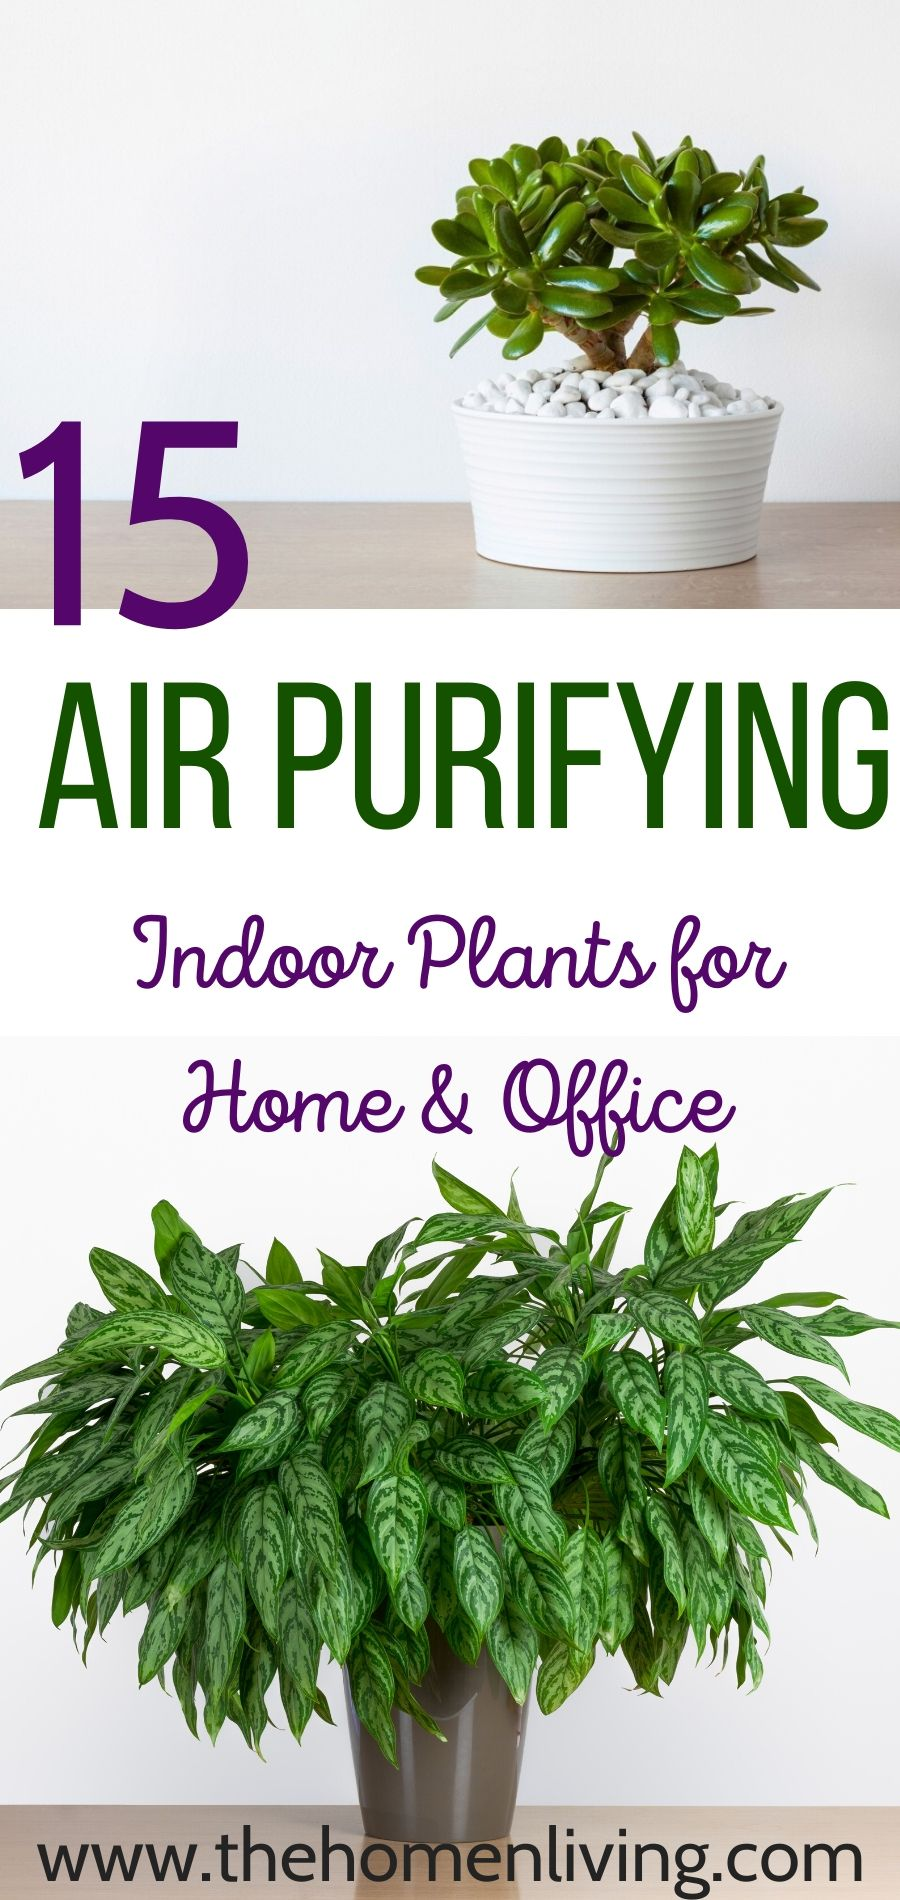 Air Purifying Plants 15 Indoor Plants That Clean The Air And Remove Toxins In 2020 Indoor Air Purifying Plants Air Purifying Plants Air Purifying House Plants